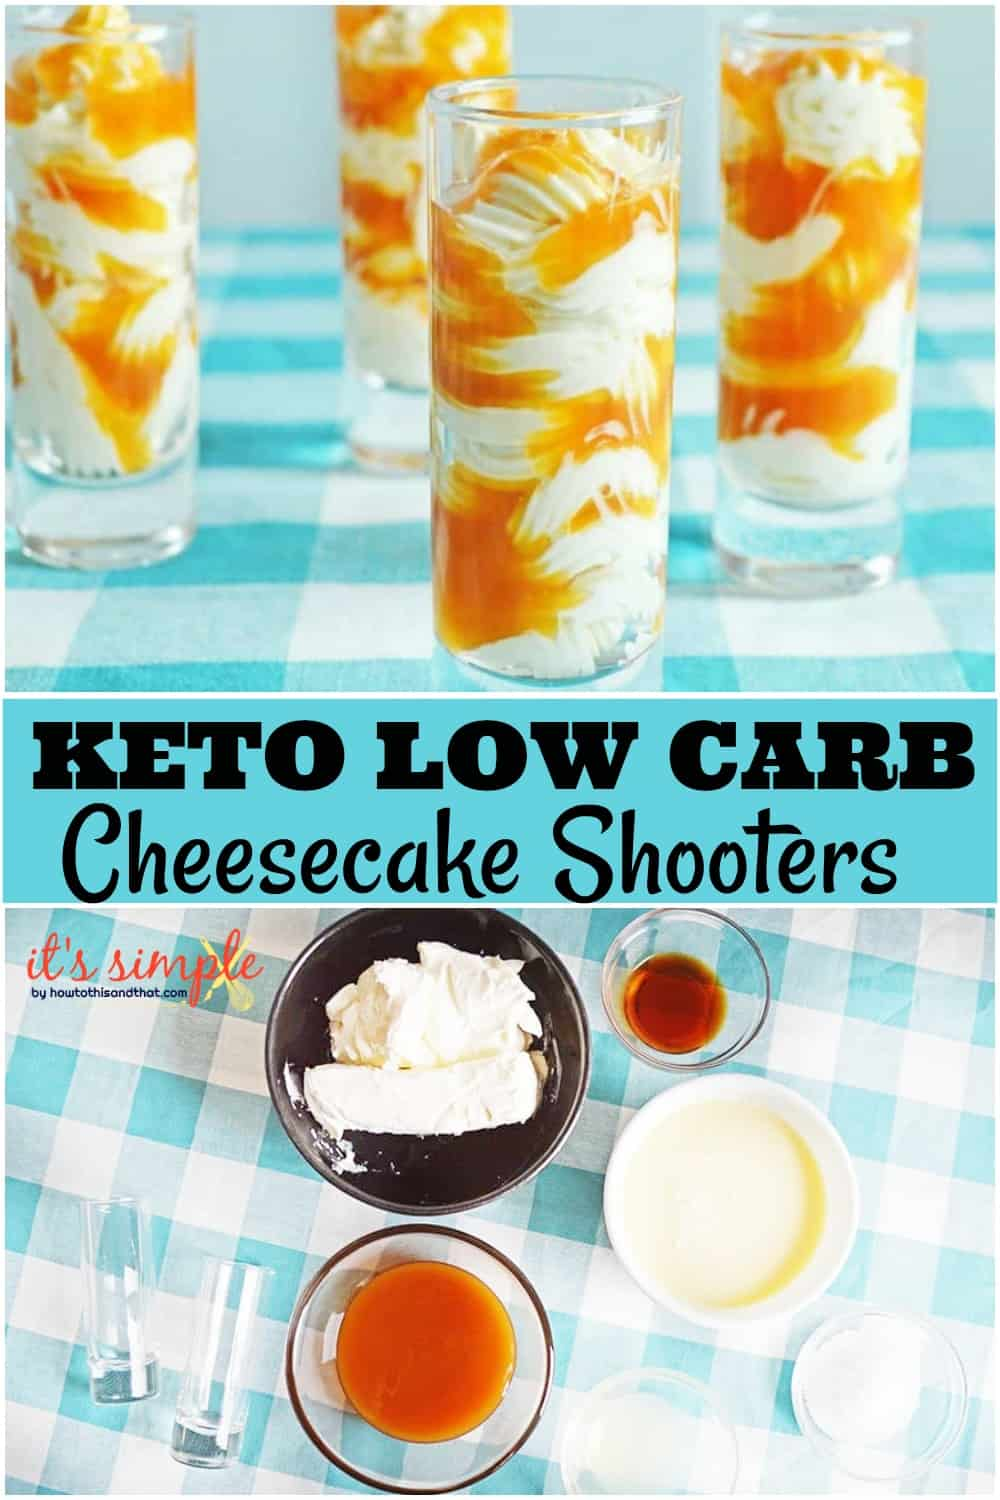 keto low carb cheesecake shooters